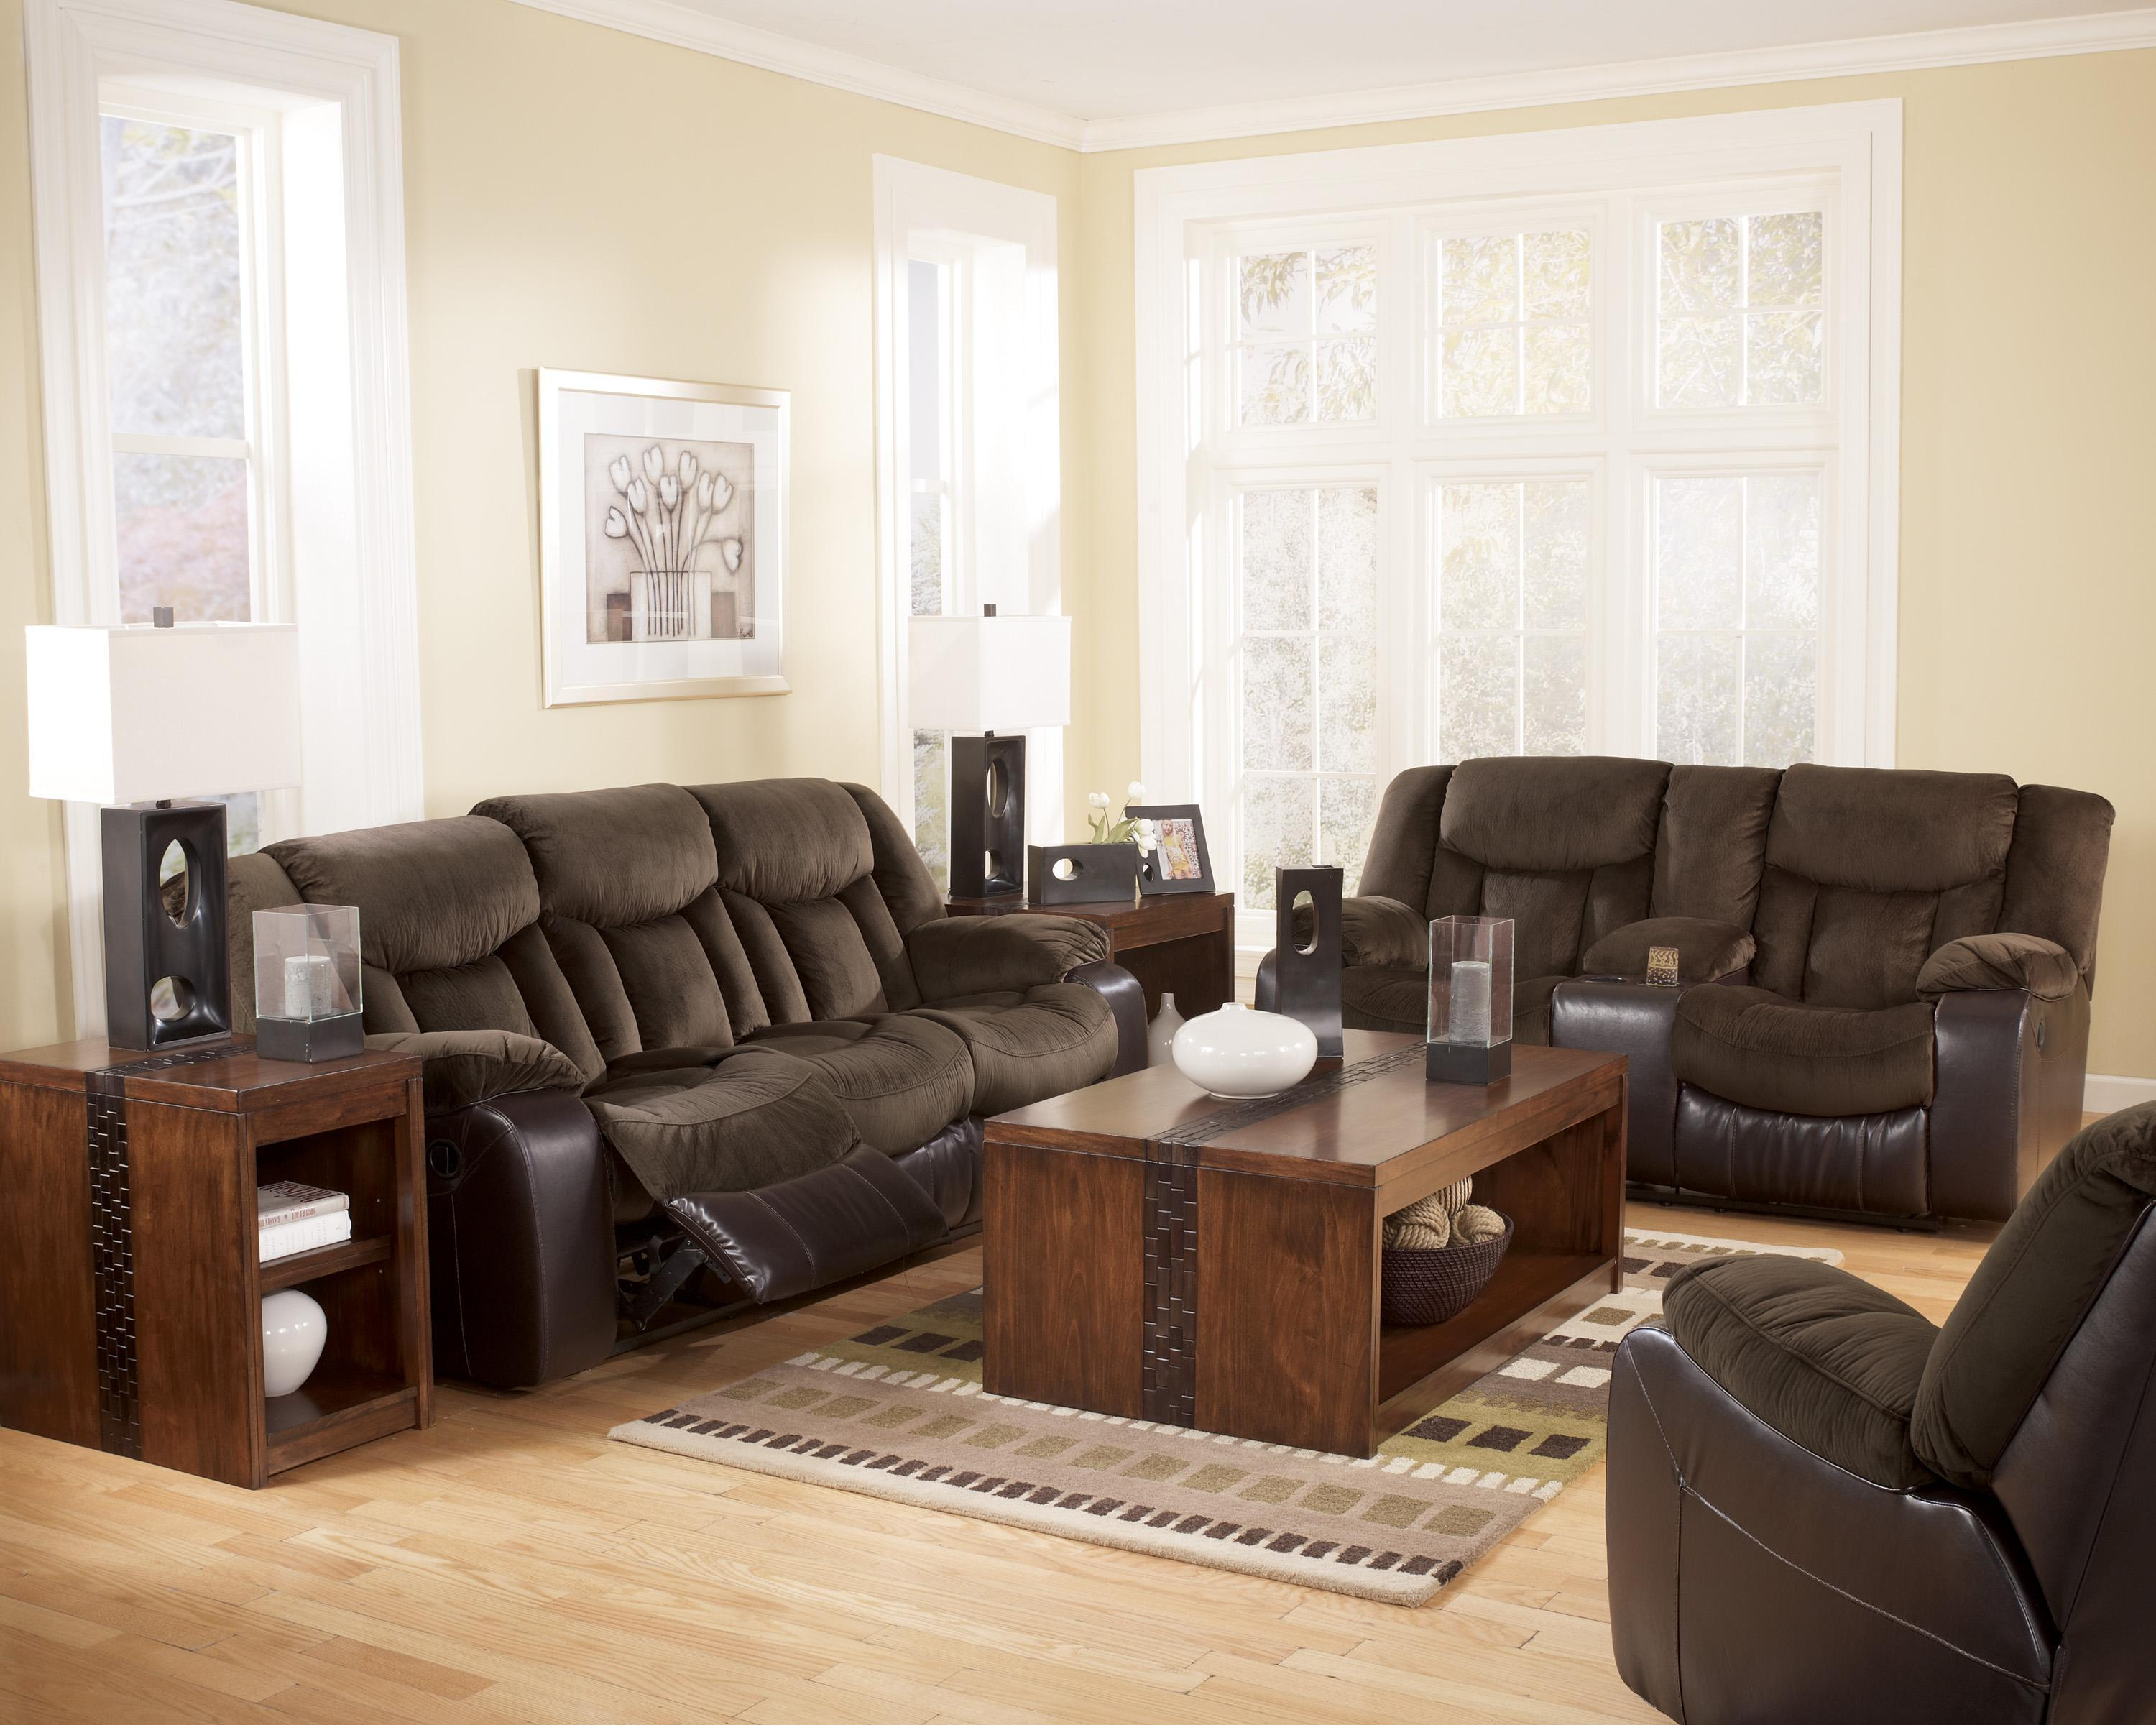 Signature Design by Ashley Tafton - Java Reclining Living Room Group - Item Number: 79202 Living Room Group 2